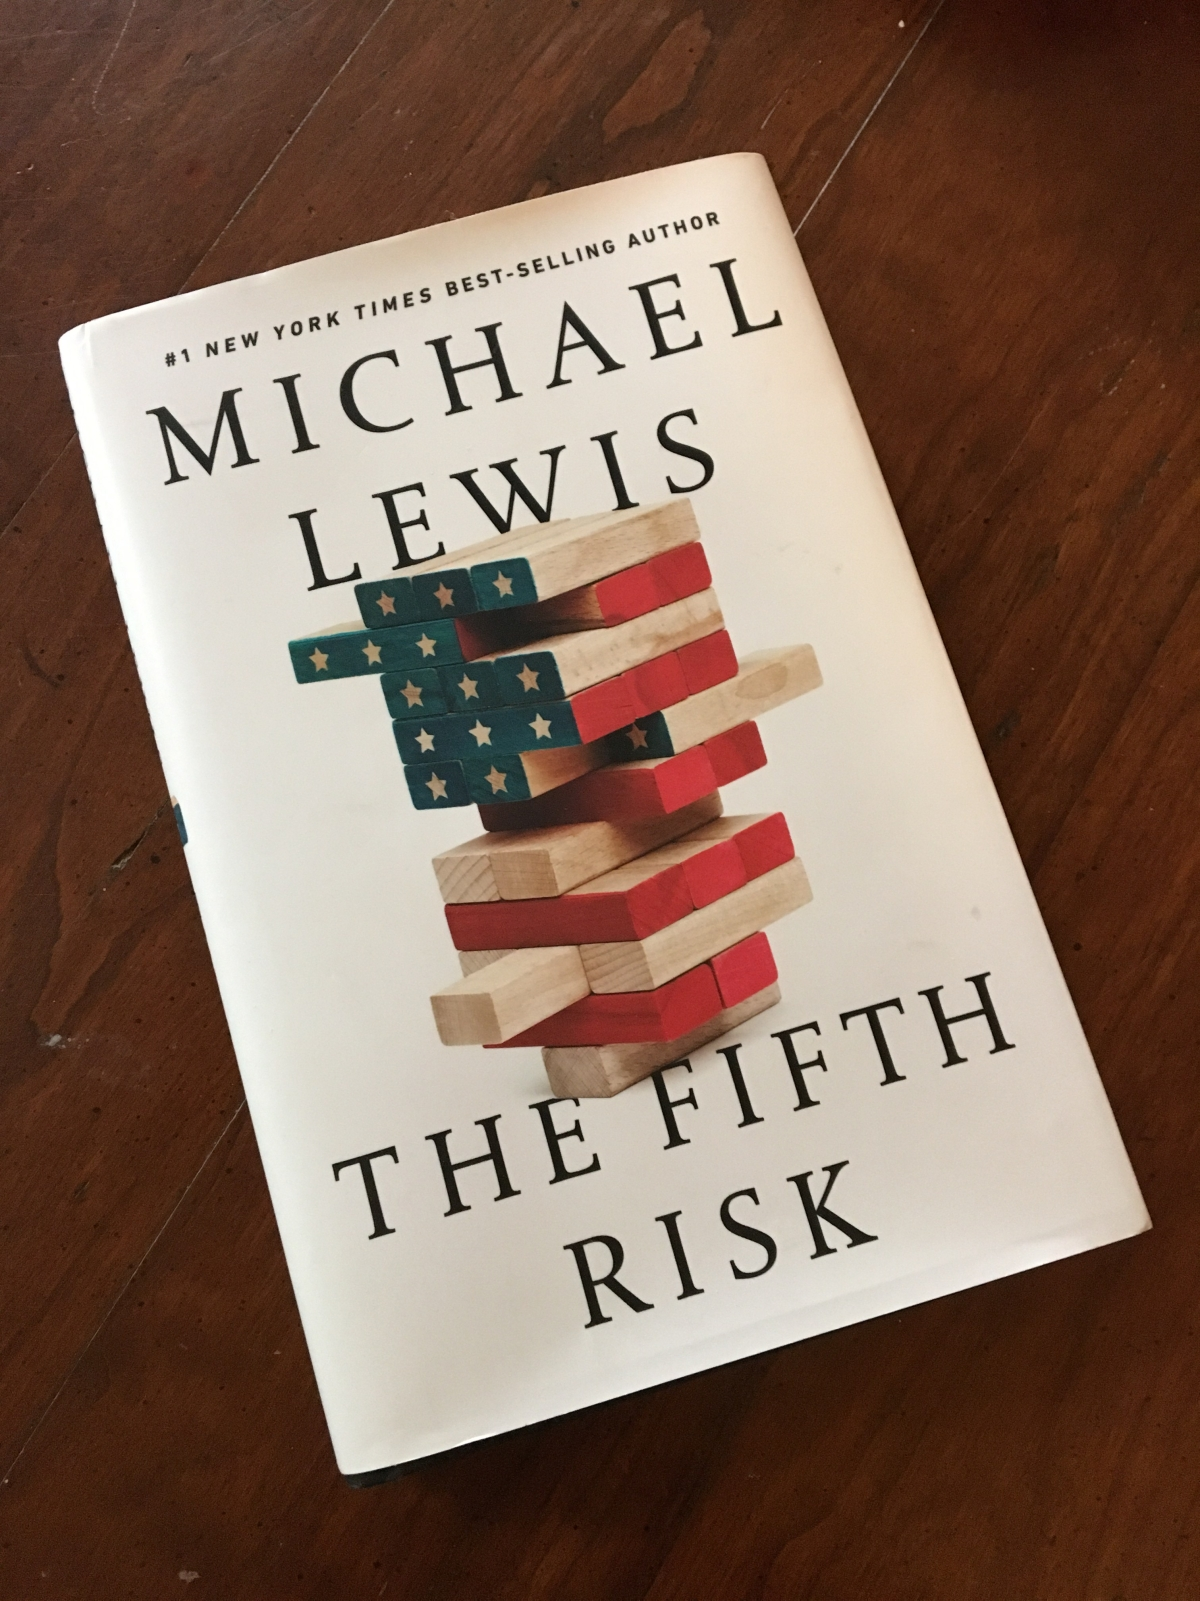 image of the book The Fifth Risk